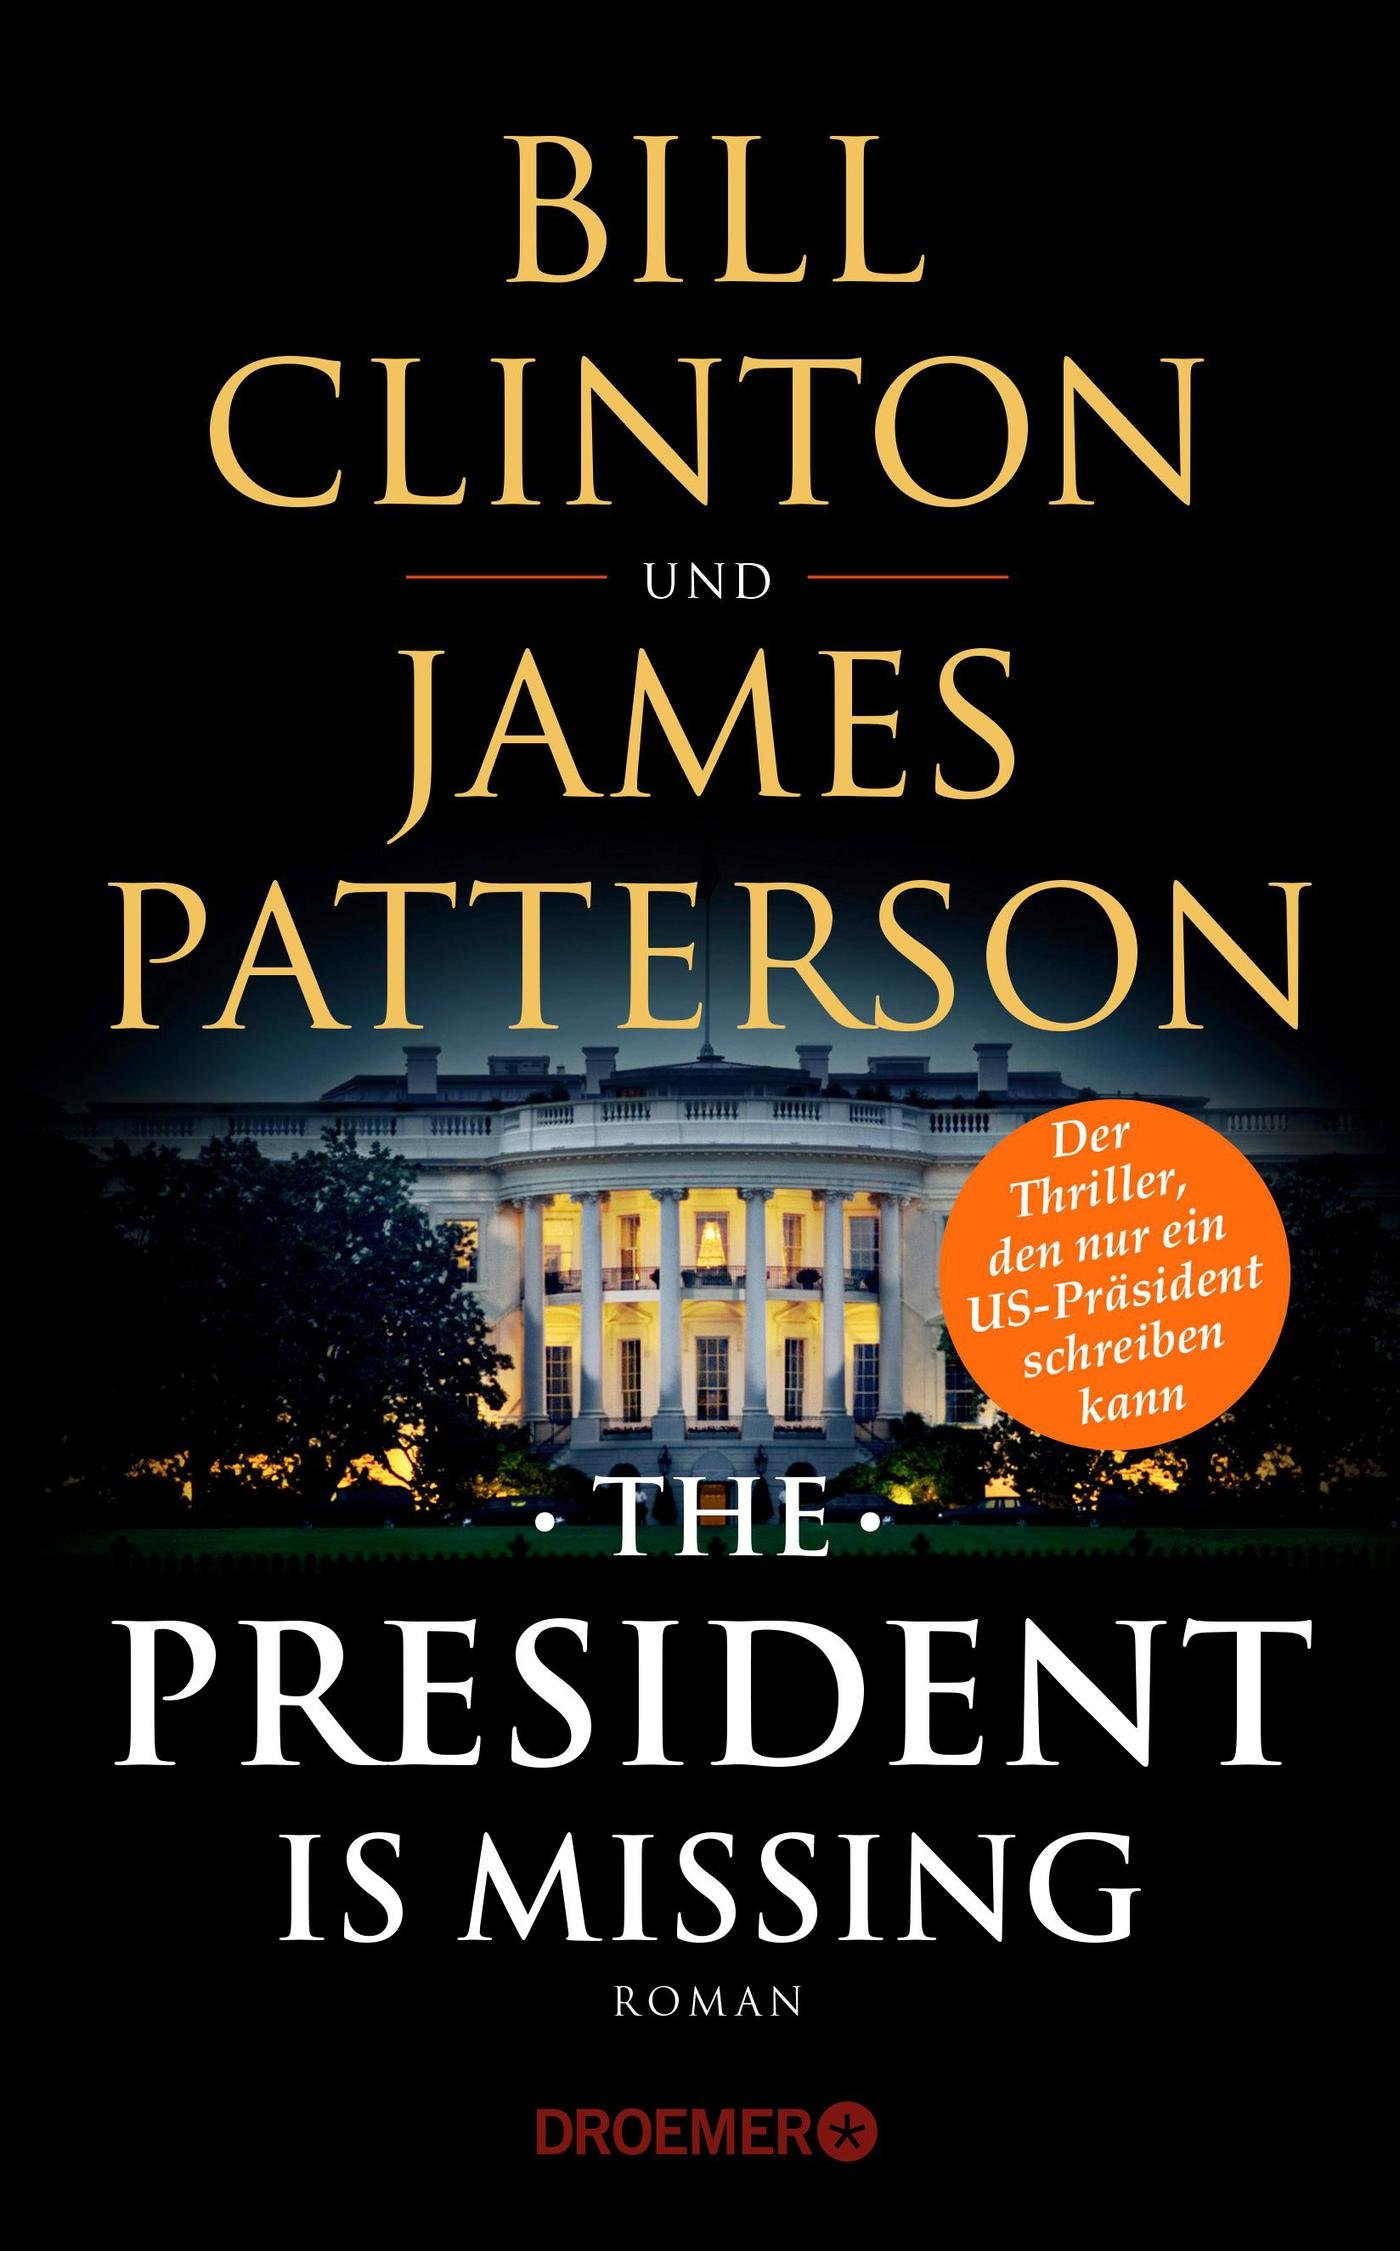 The President Is Missing: Roman (dt. Ausgabe): Amazon.de: Clinton, Bill,  Patterson, James, Kreutzer, Anke, Kreutzer, Dr. Eberhard: Bücher